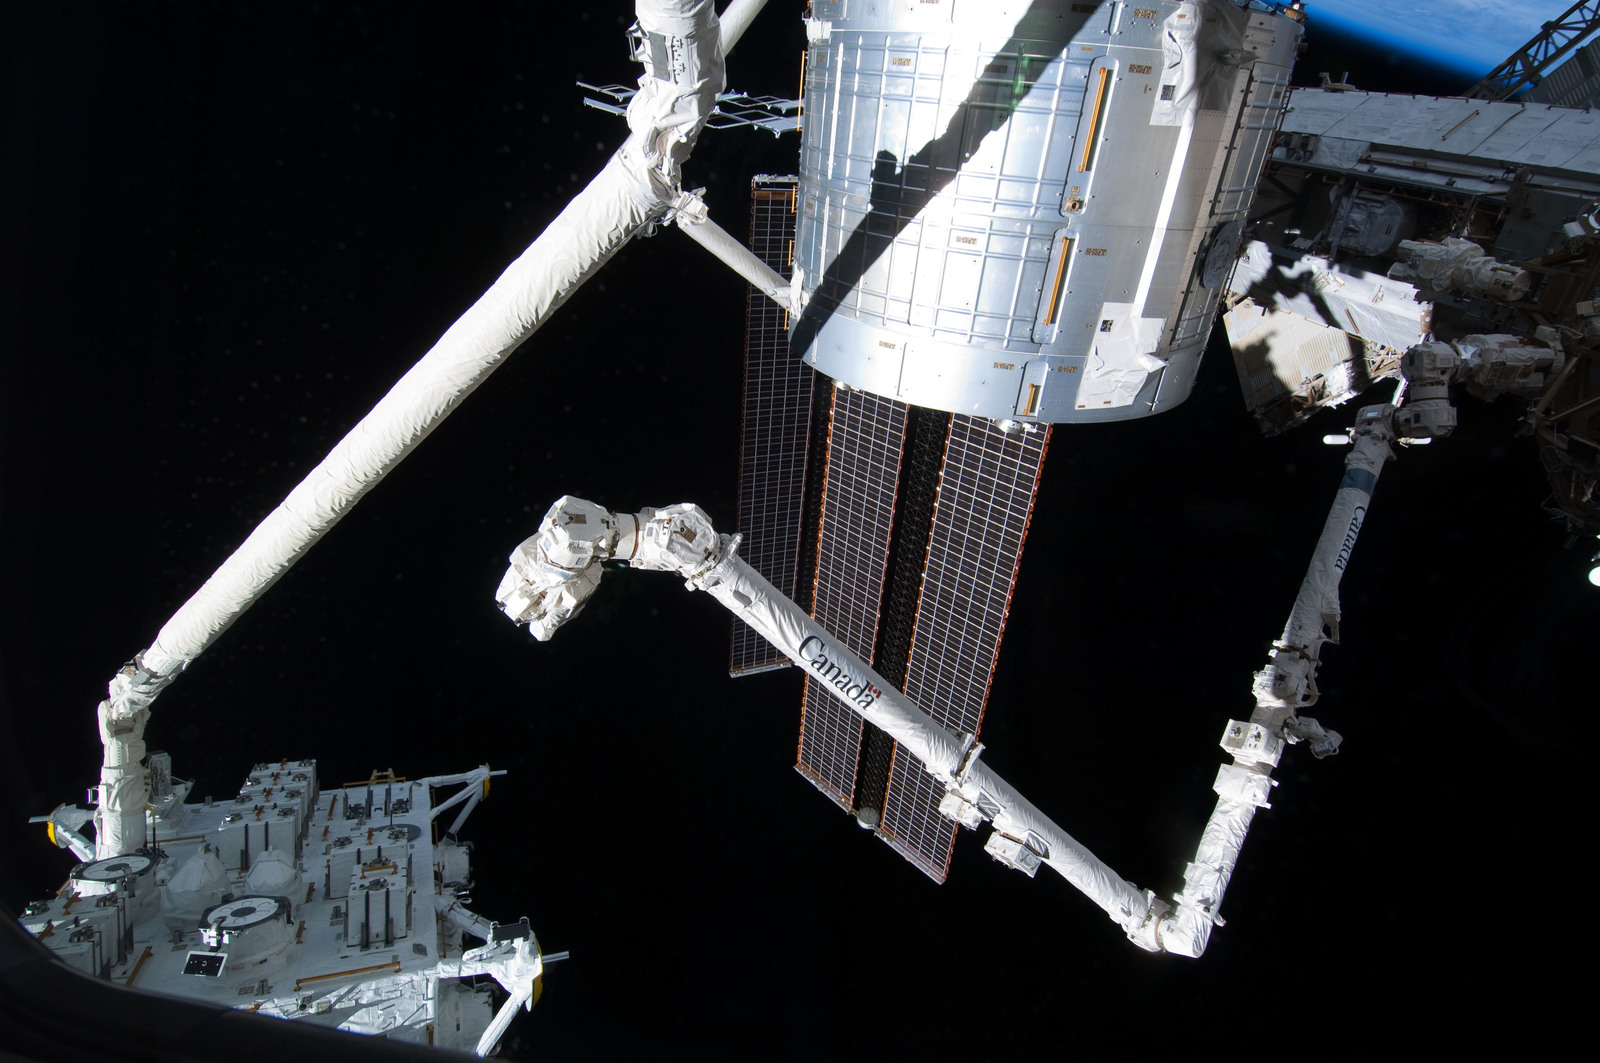 S127E006900 - STS-127 - SRMS handoff to the SSRMS during EVA-1 on STS-127 / Expedition 20 Joint Operations